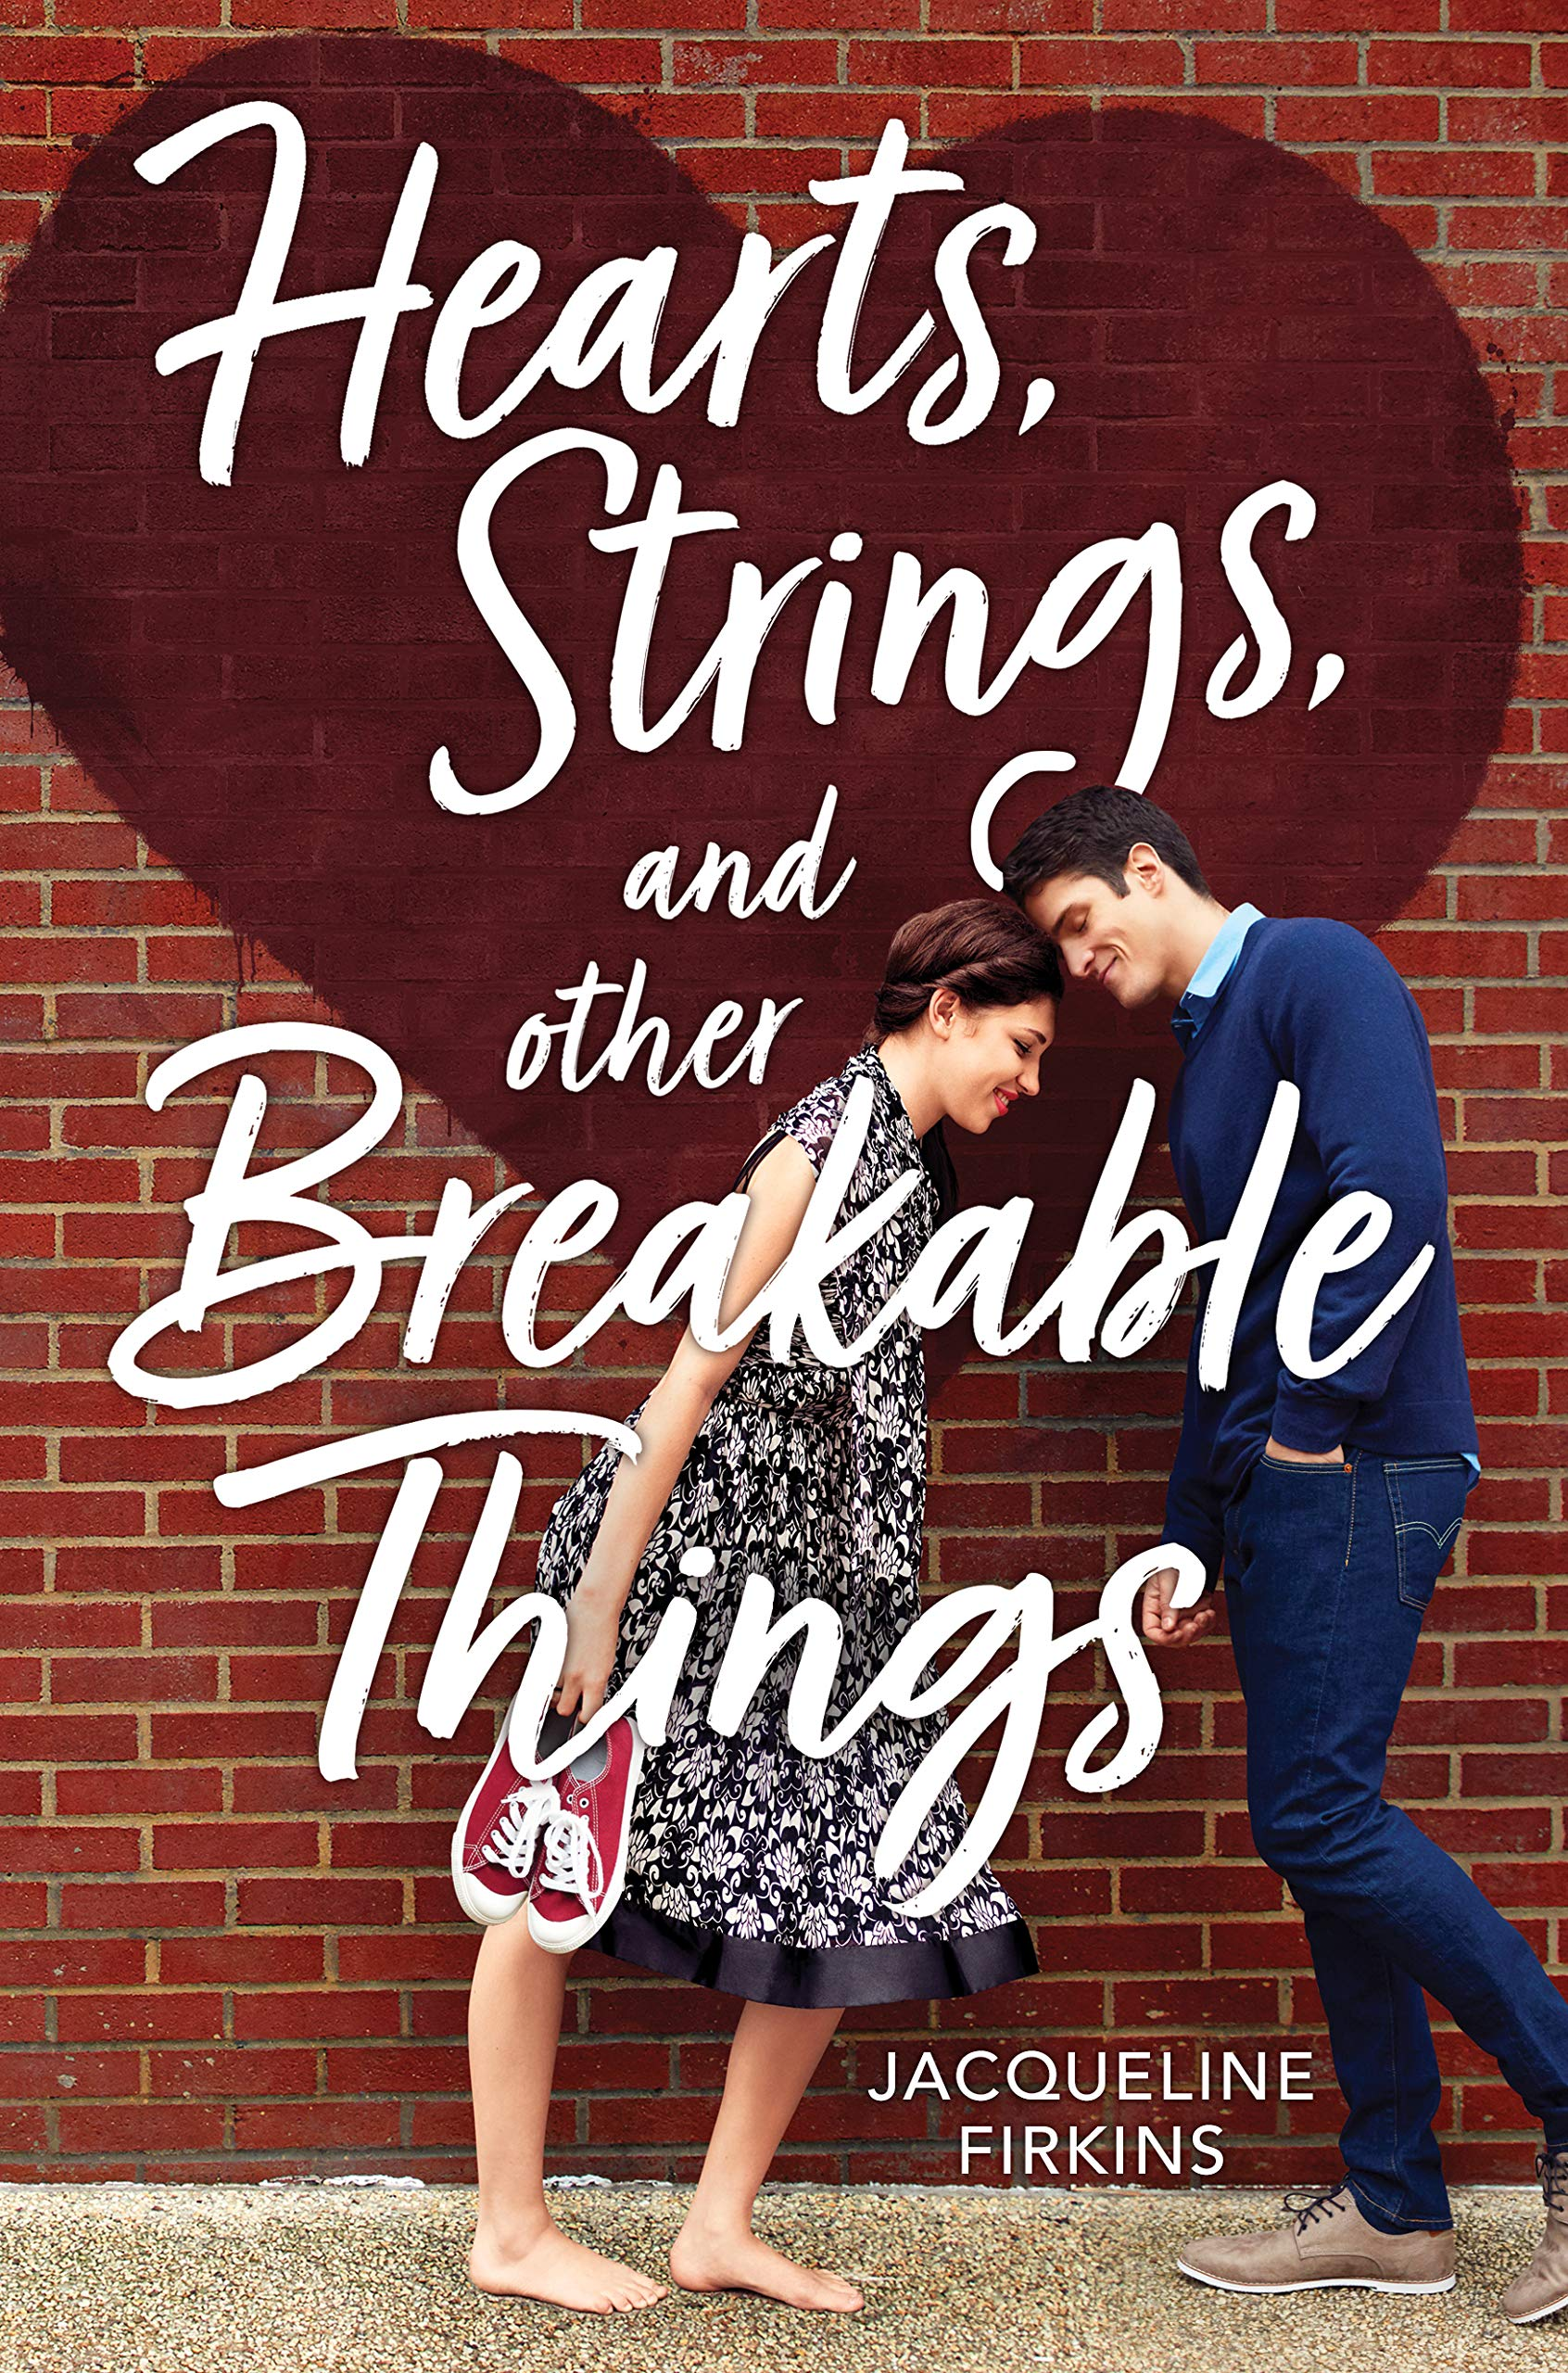 Heart Strings and Other Breakable Things. by Jacqueline Firkins (2019)